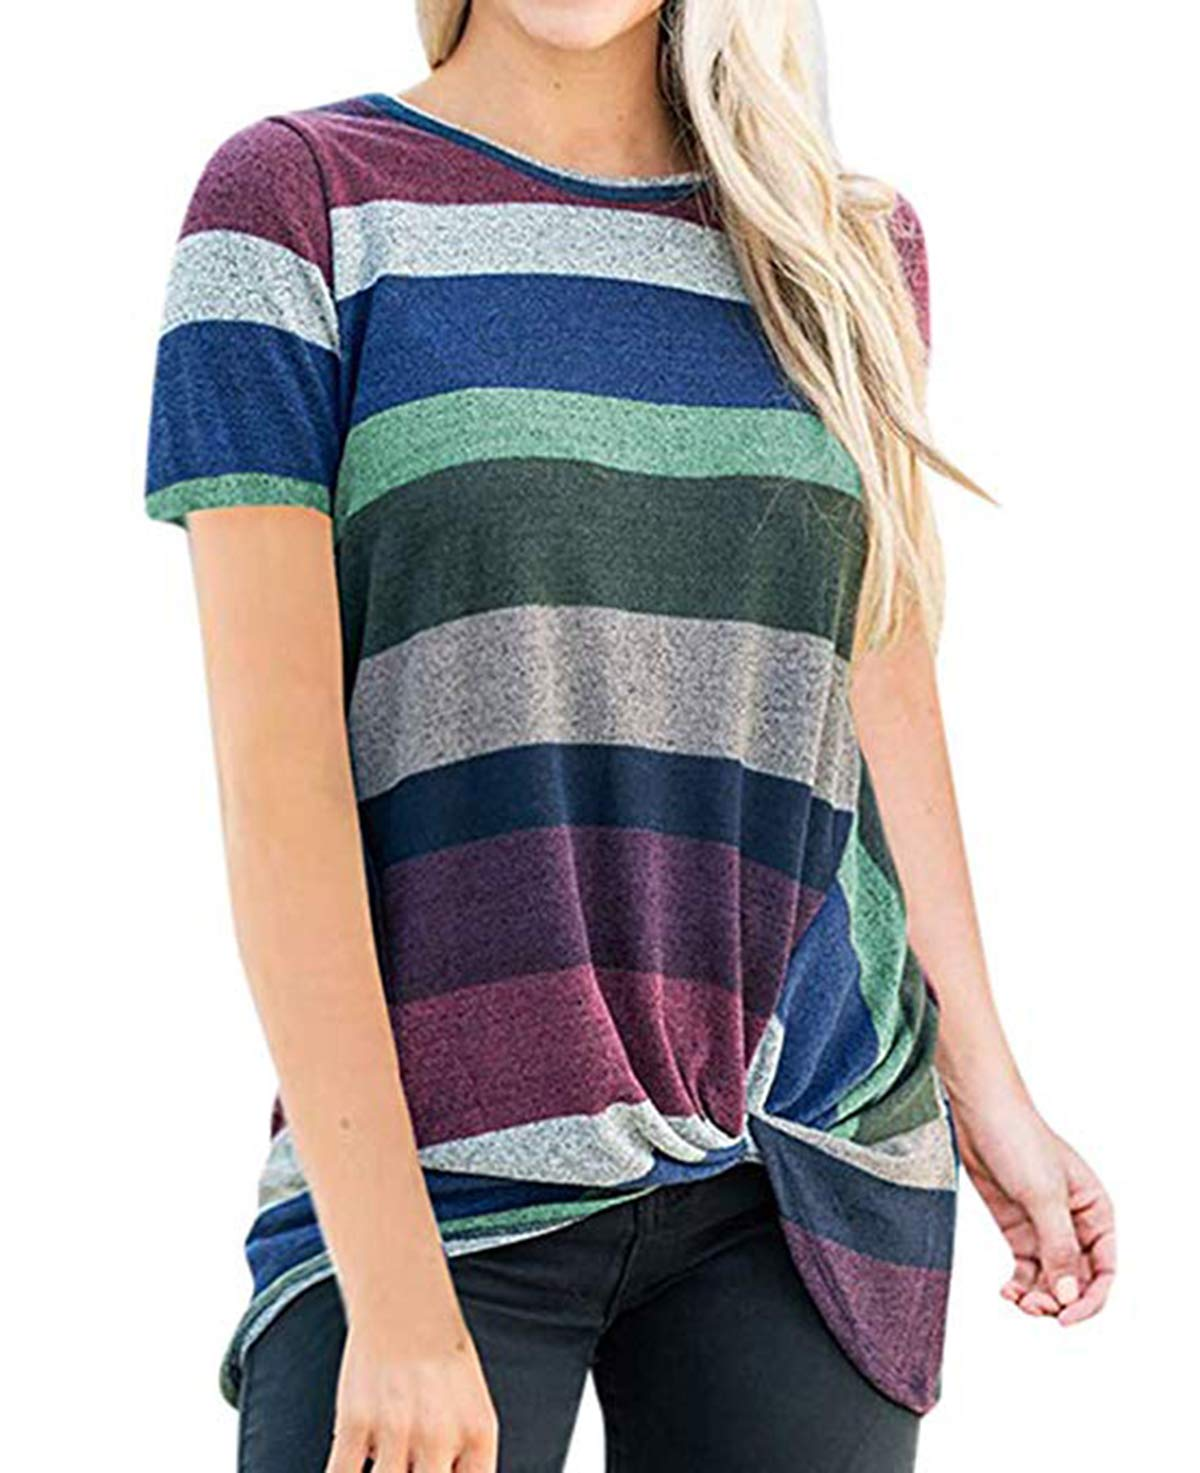 Eanklosco Women's Tops Striped T-Shirts Front Knot Tunic Casual Blouses Short Sleeve (XL/UK 14, Light Purple)